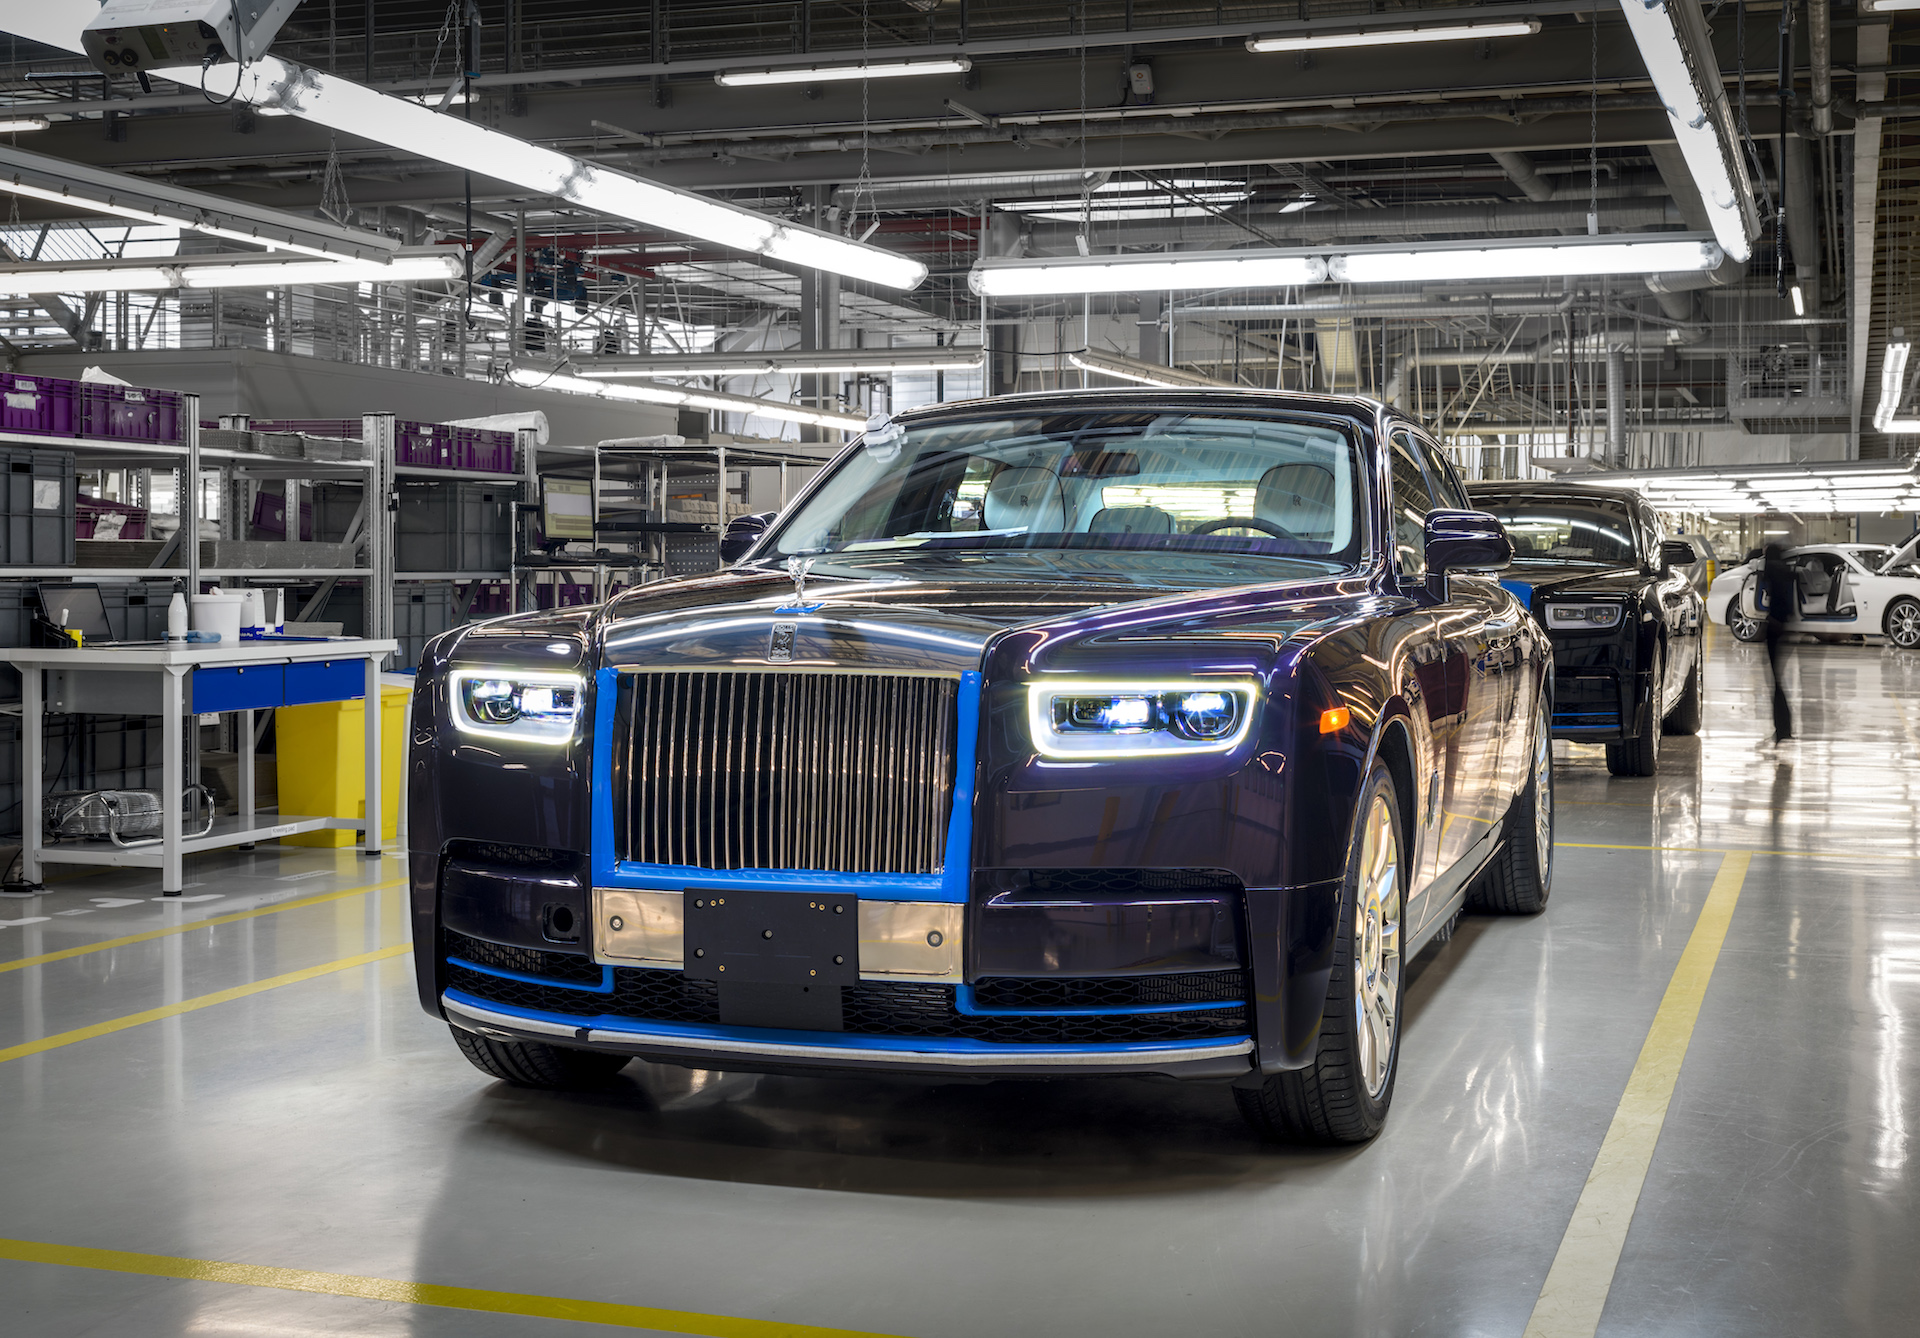 73 All New 2020 Rolls Royce Phantoms Release Date and Concept